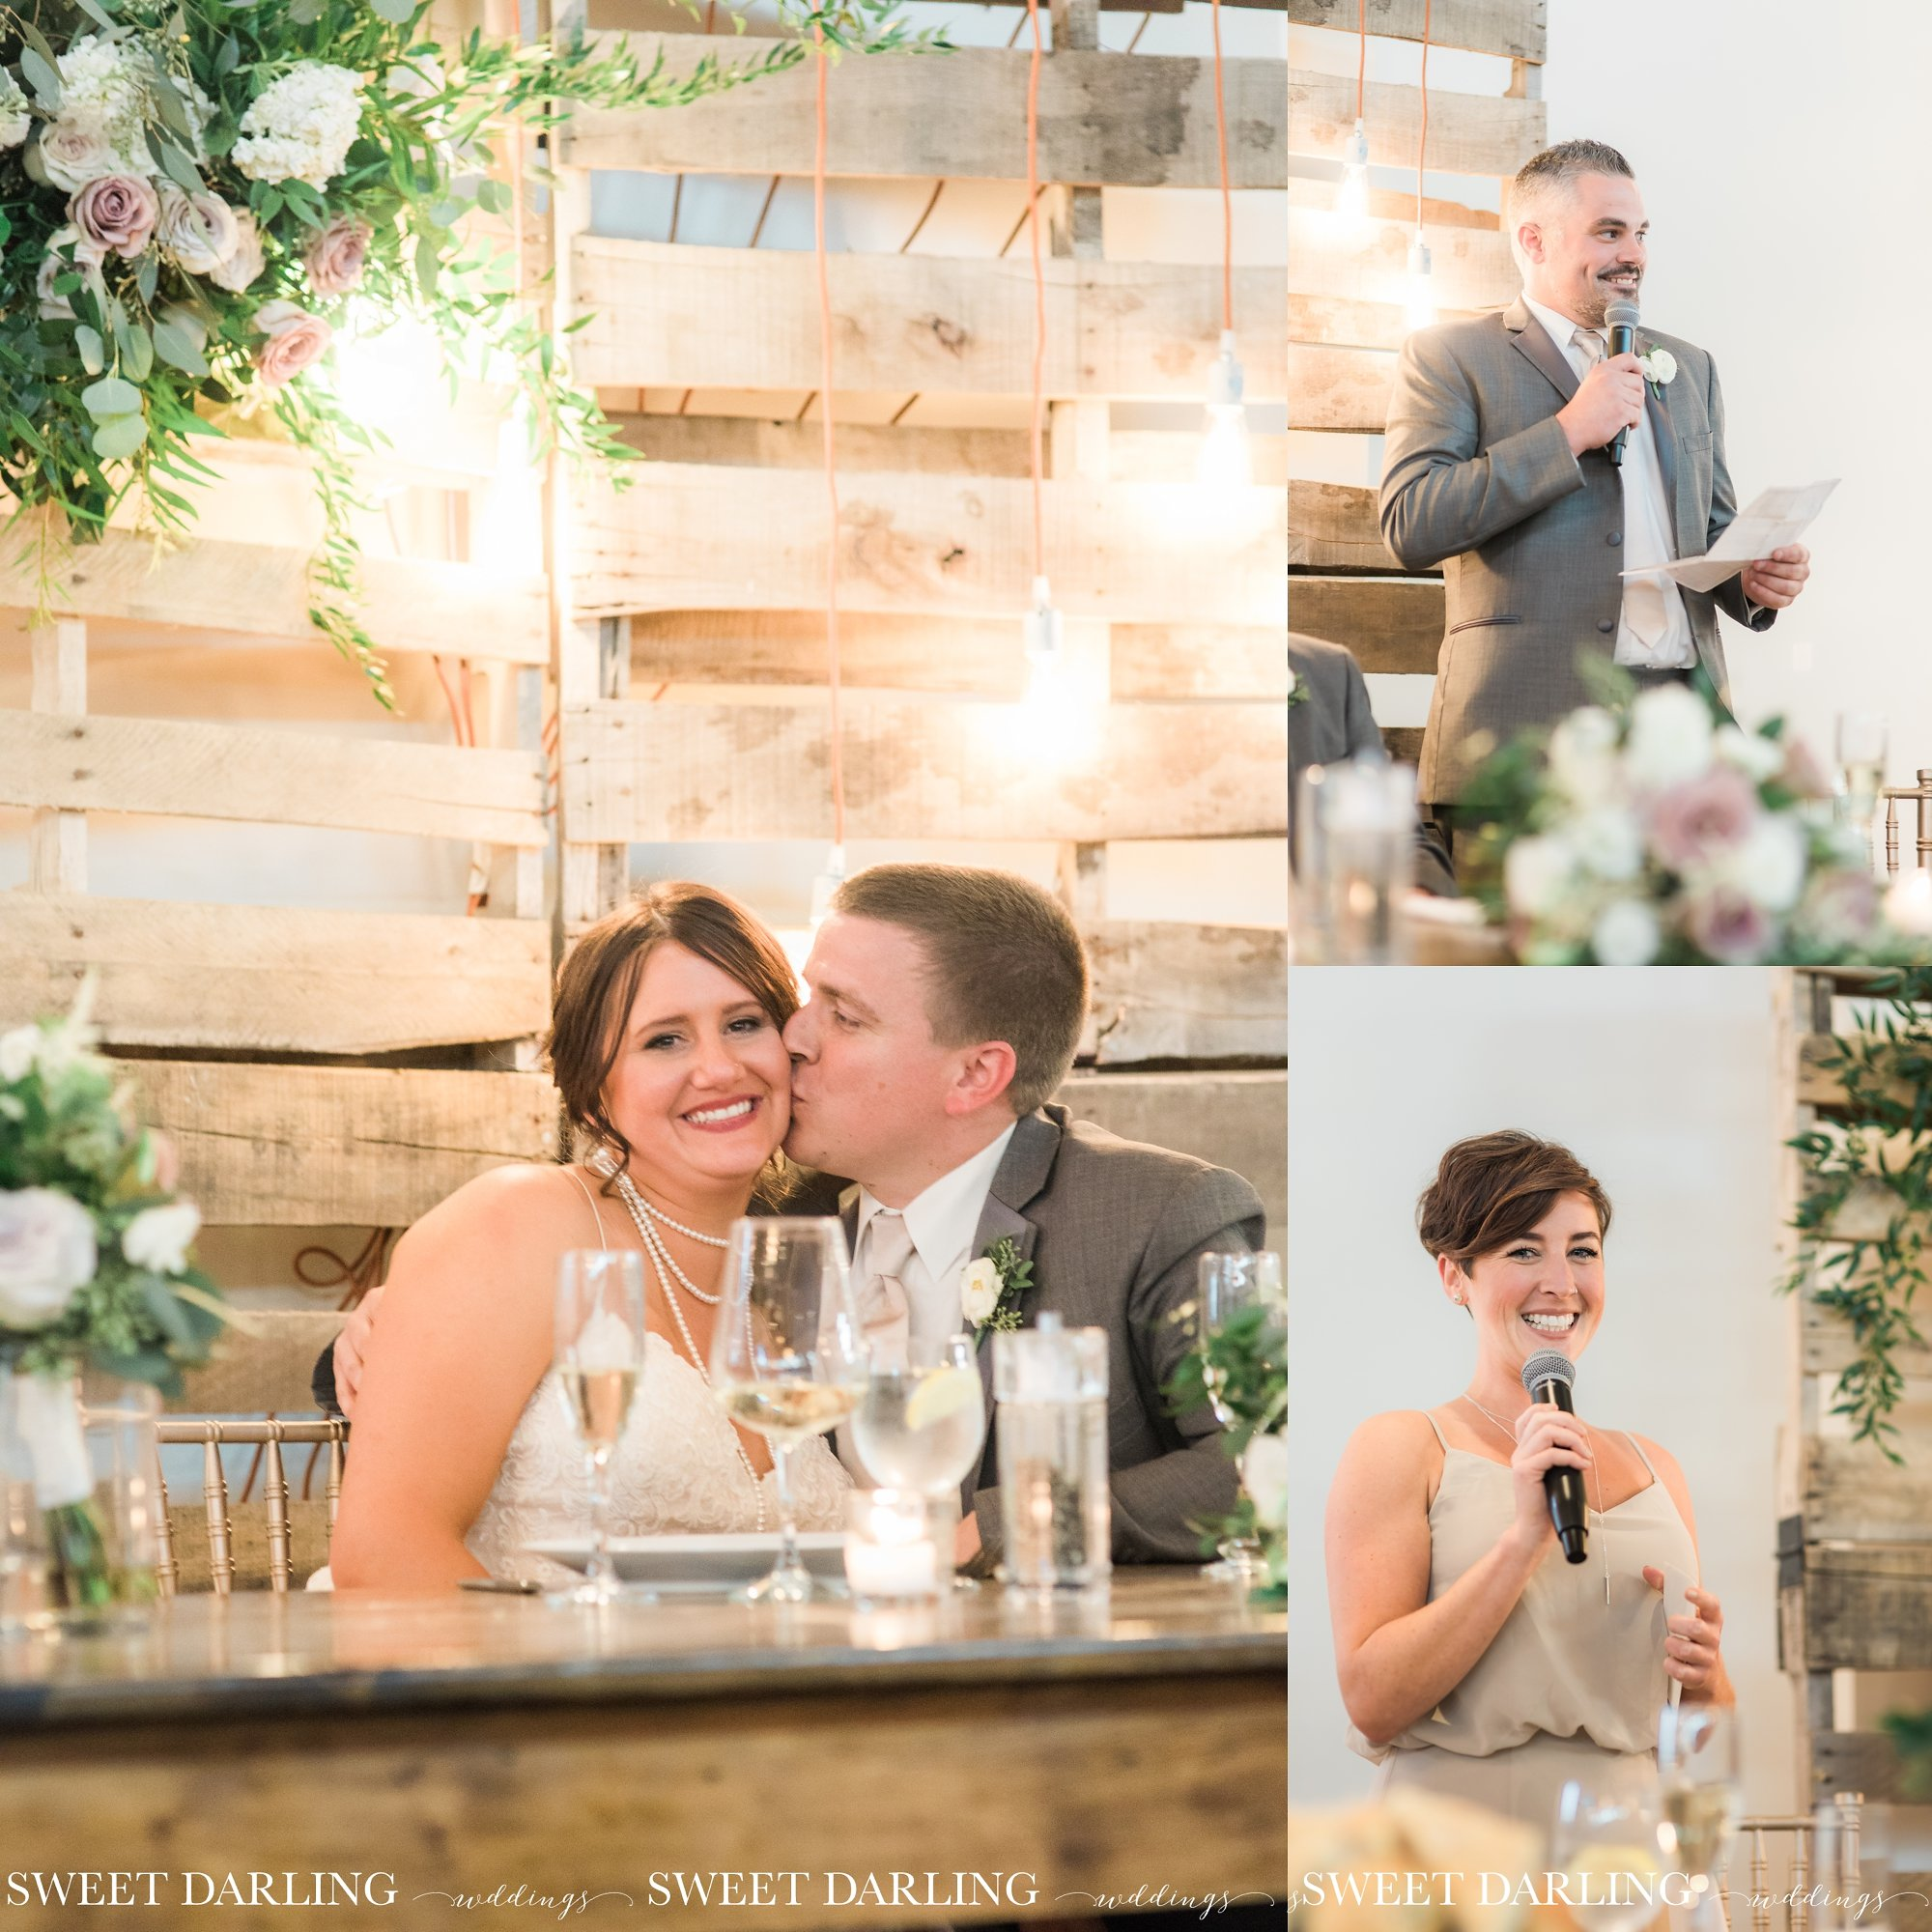 Toasts to bride and groom at wedding reception